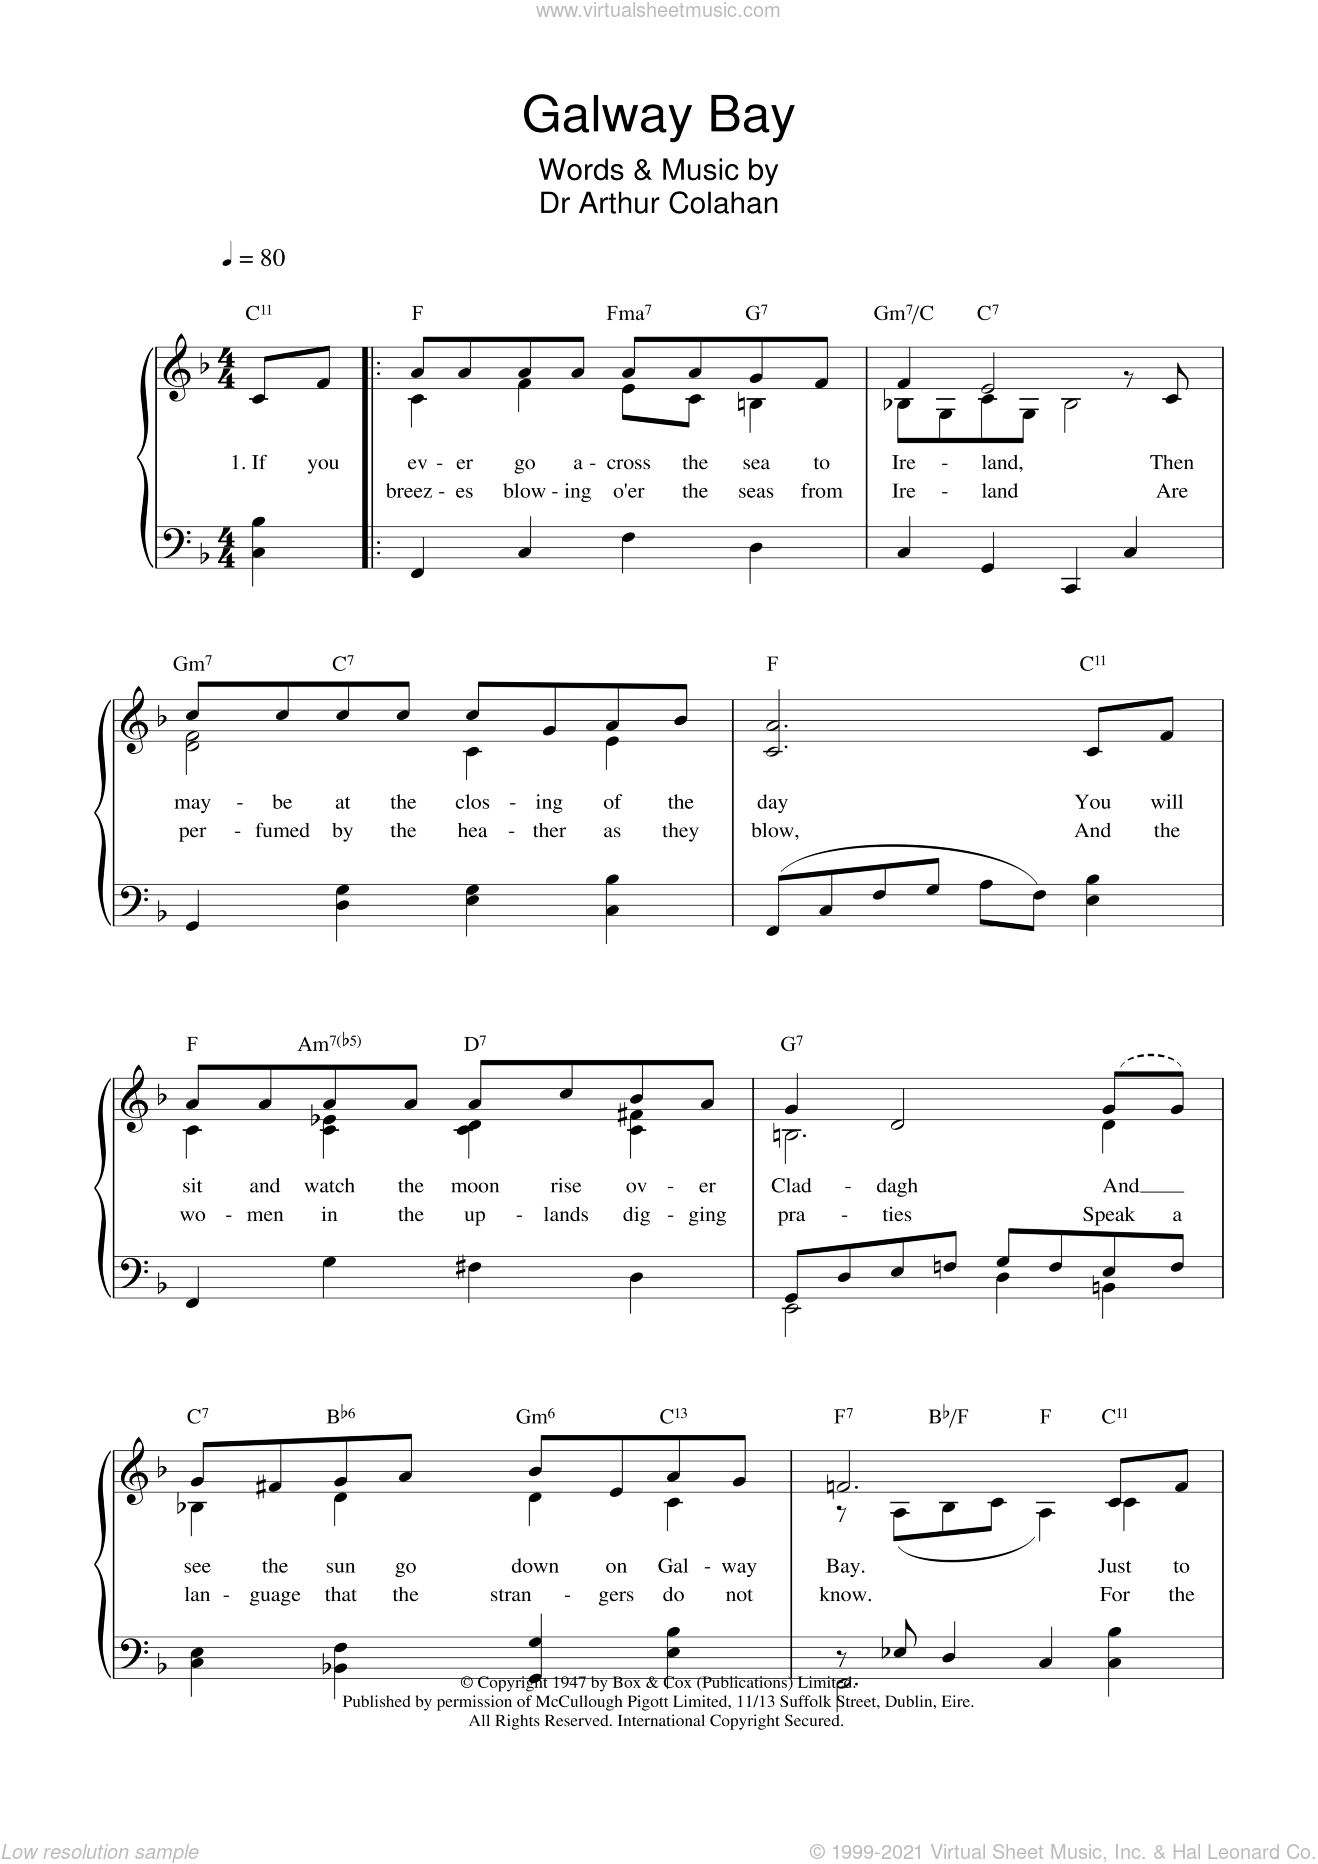 Galway Bay sheet music for voice, piano or guitar by Arthur Colahan and Dr. Arthur Colahan, intermediate skill level